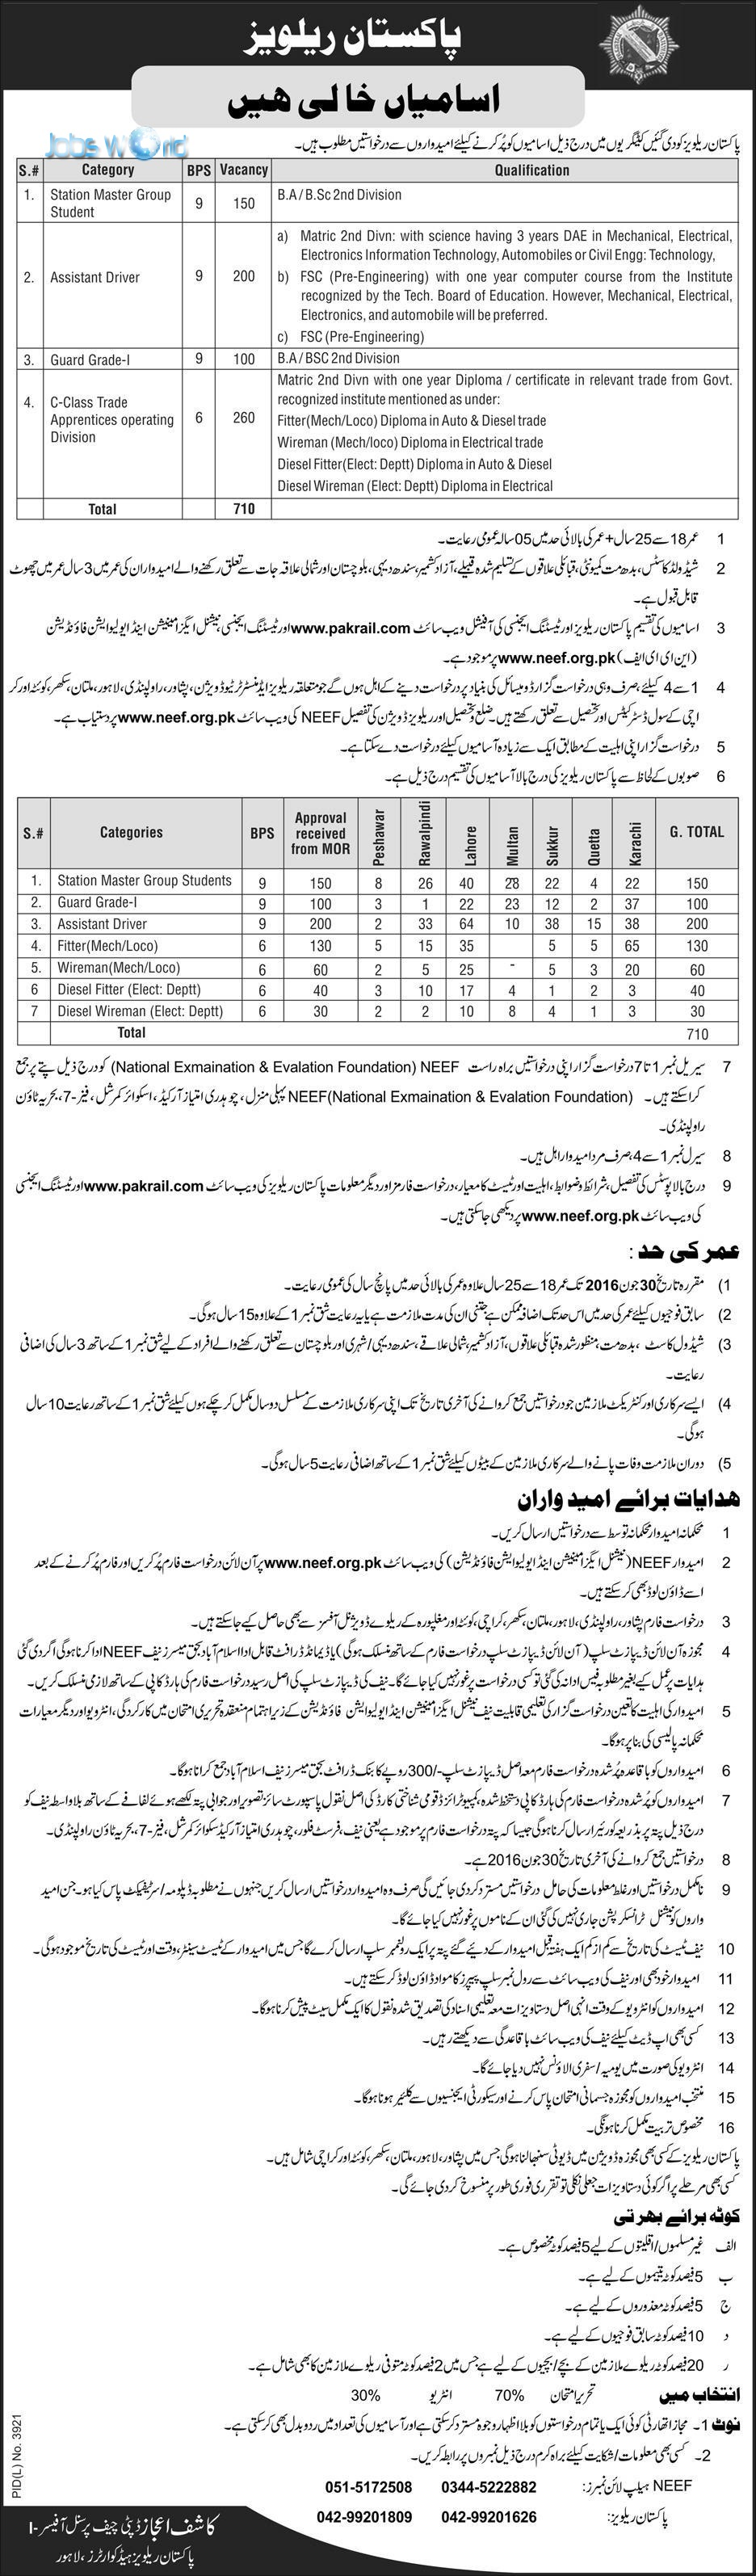 railways jobs online application form jobsworld